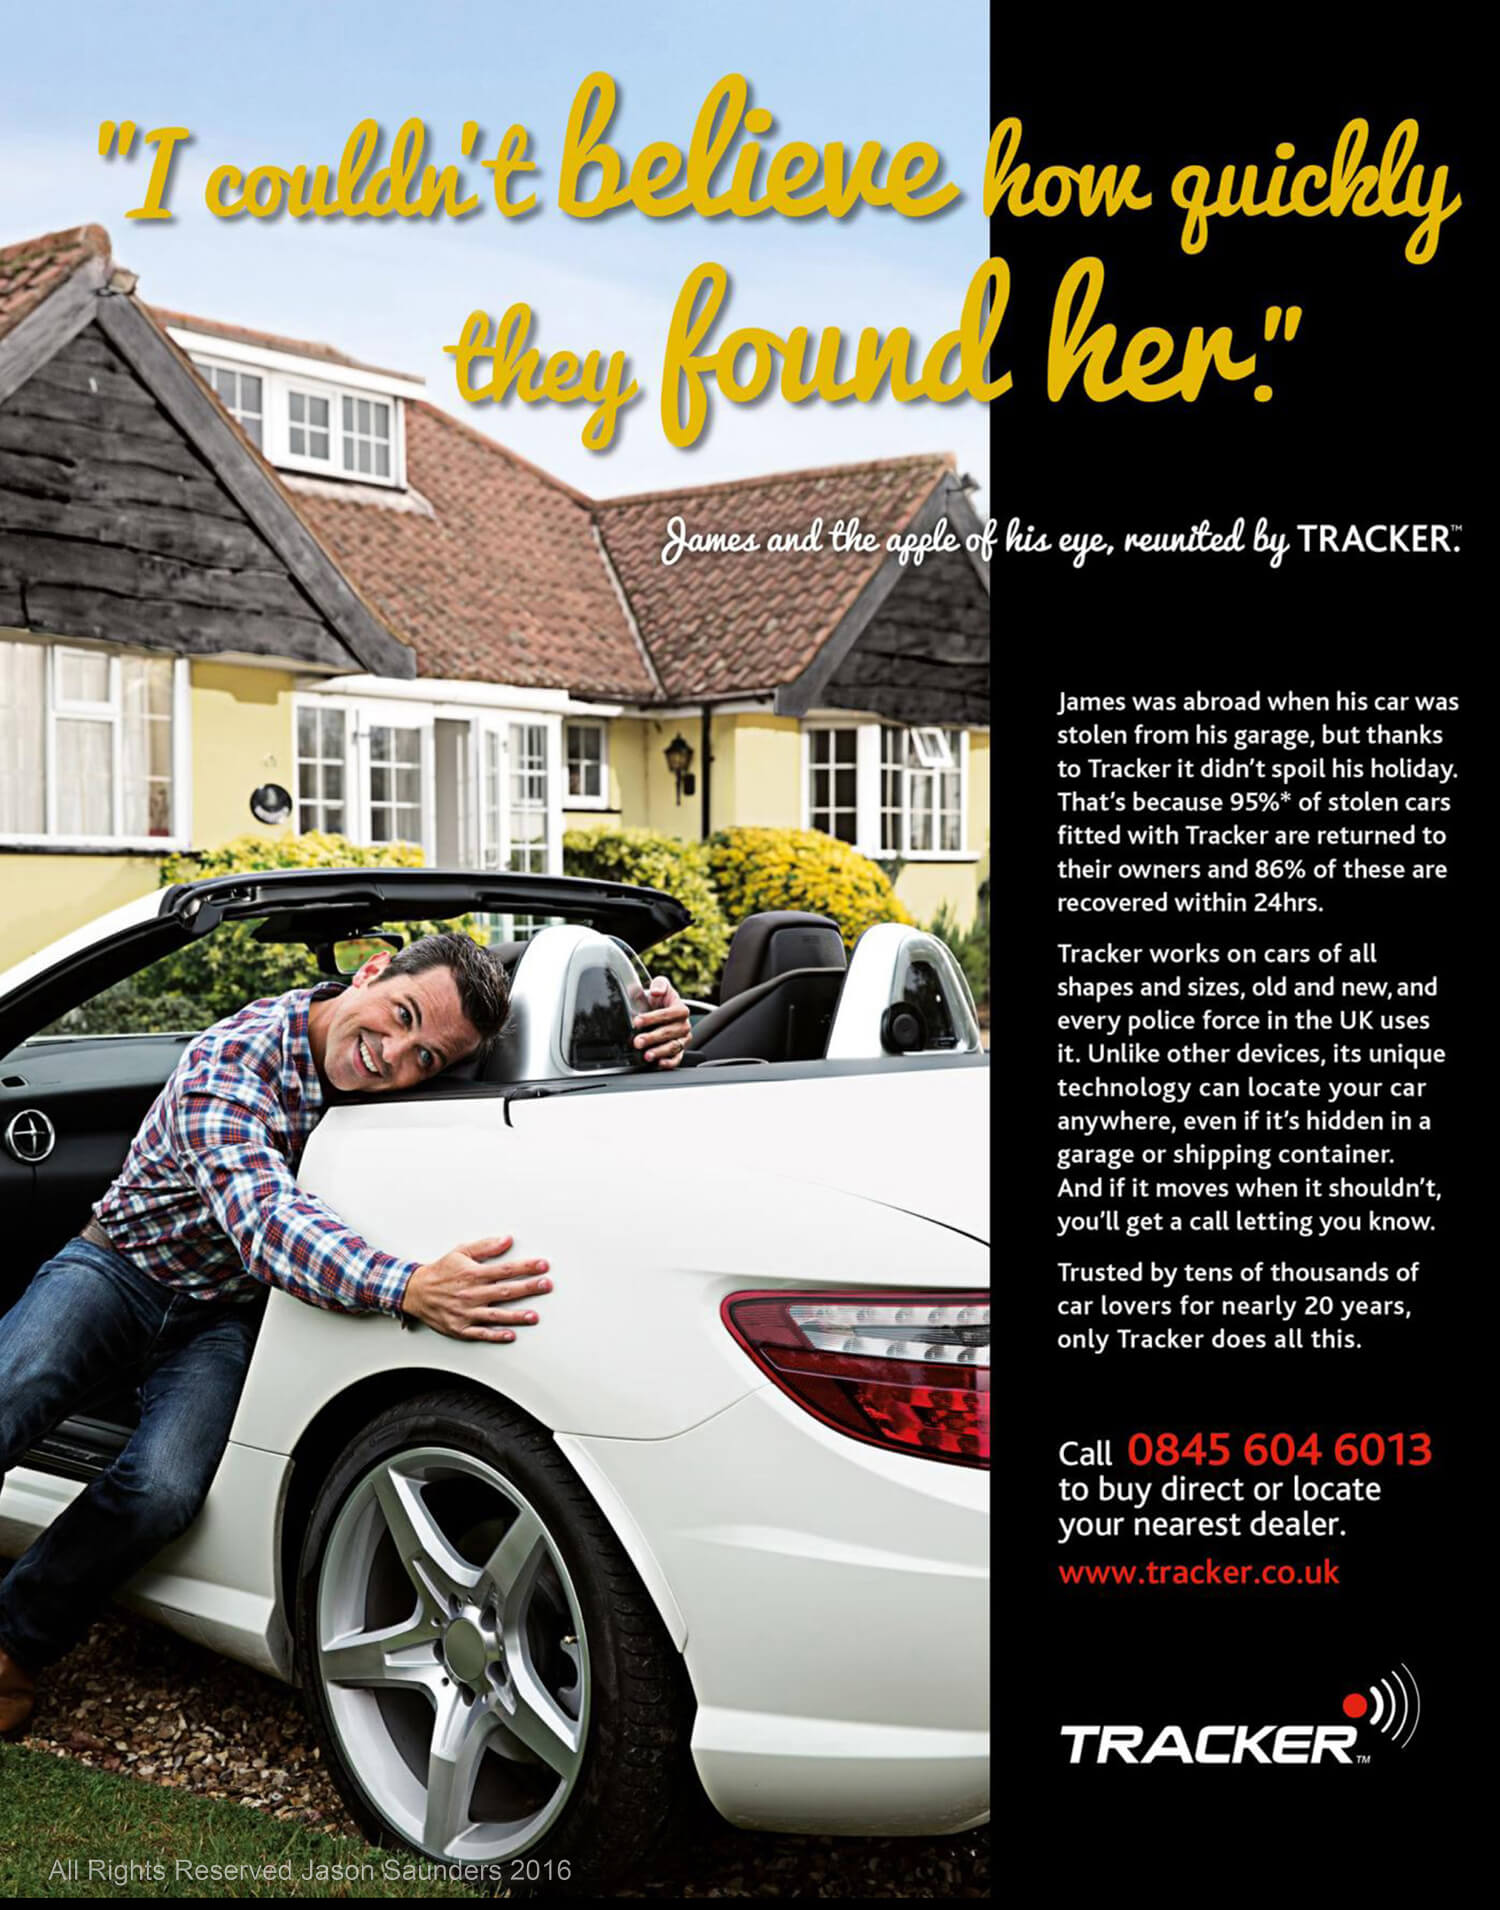 Car Tracker Advertisement, Jason Saunders